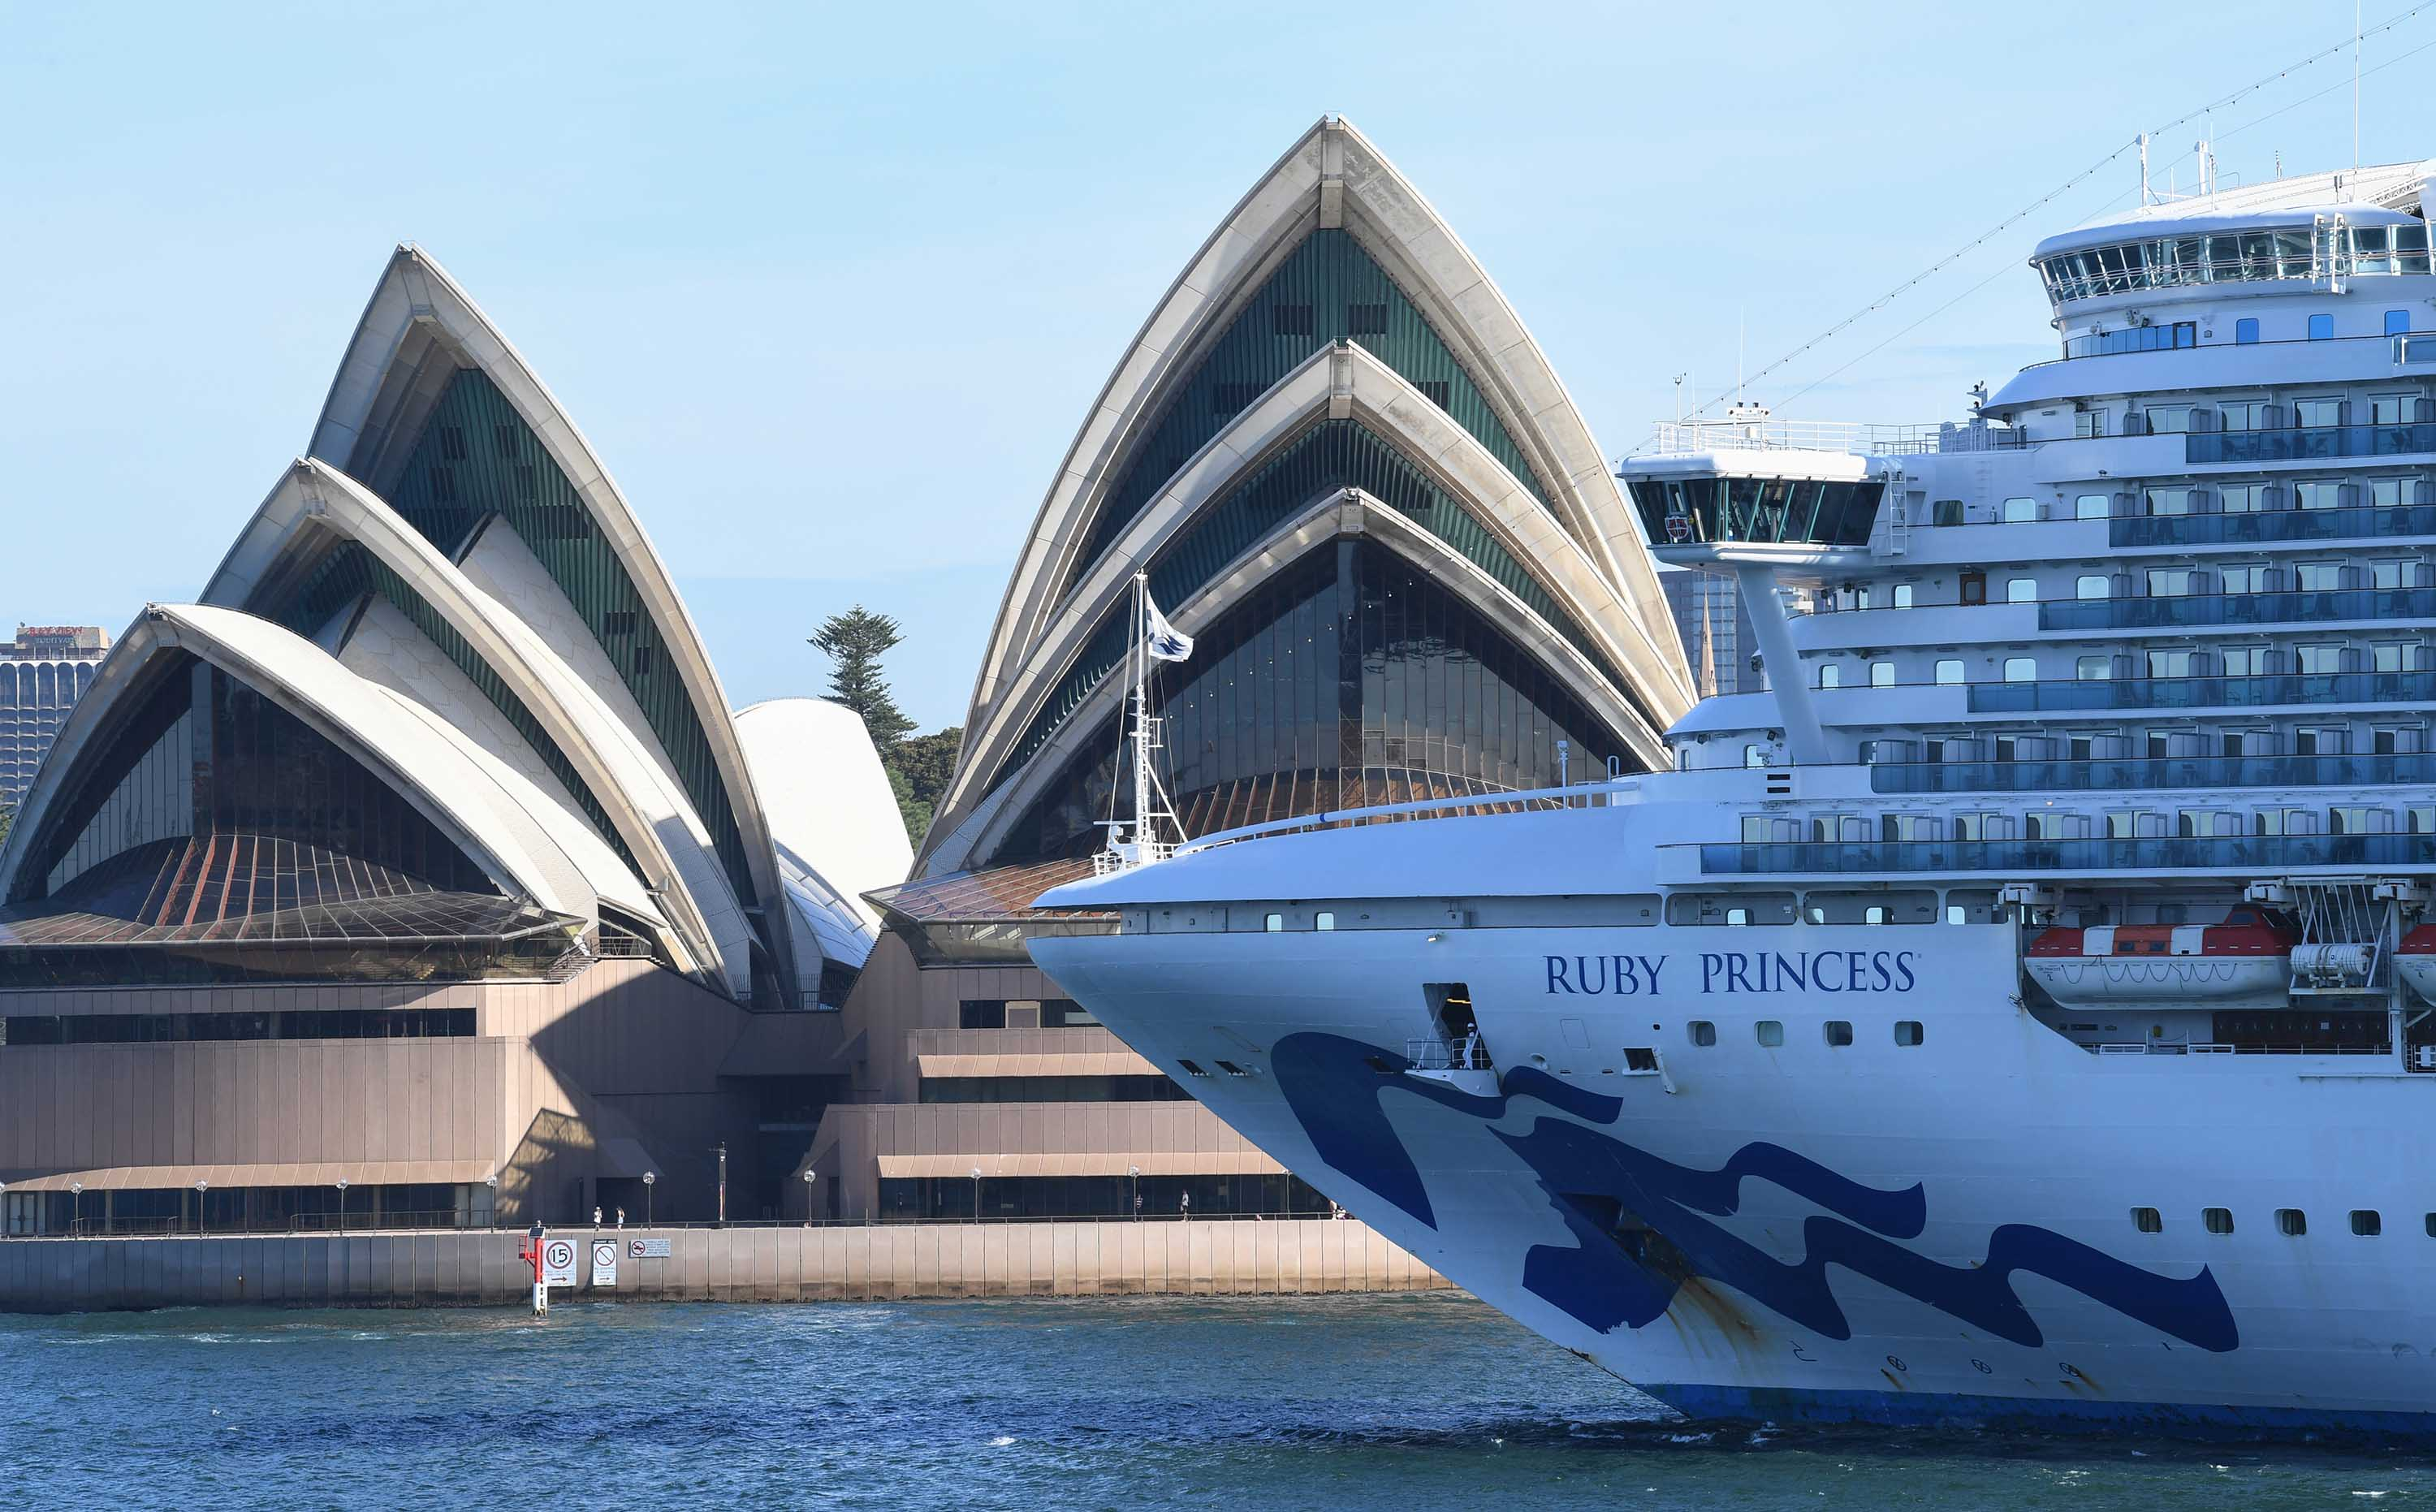 The Ruby Princess cruise ship departs Sydney Harbour on March 19.